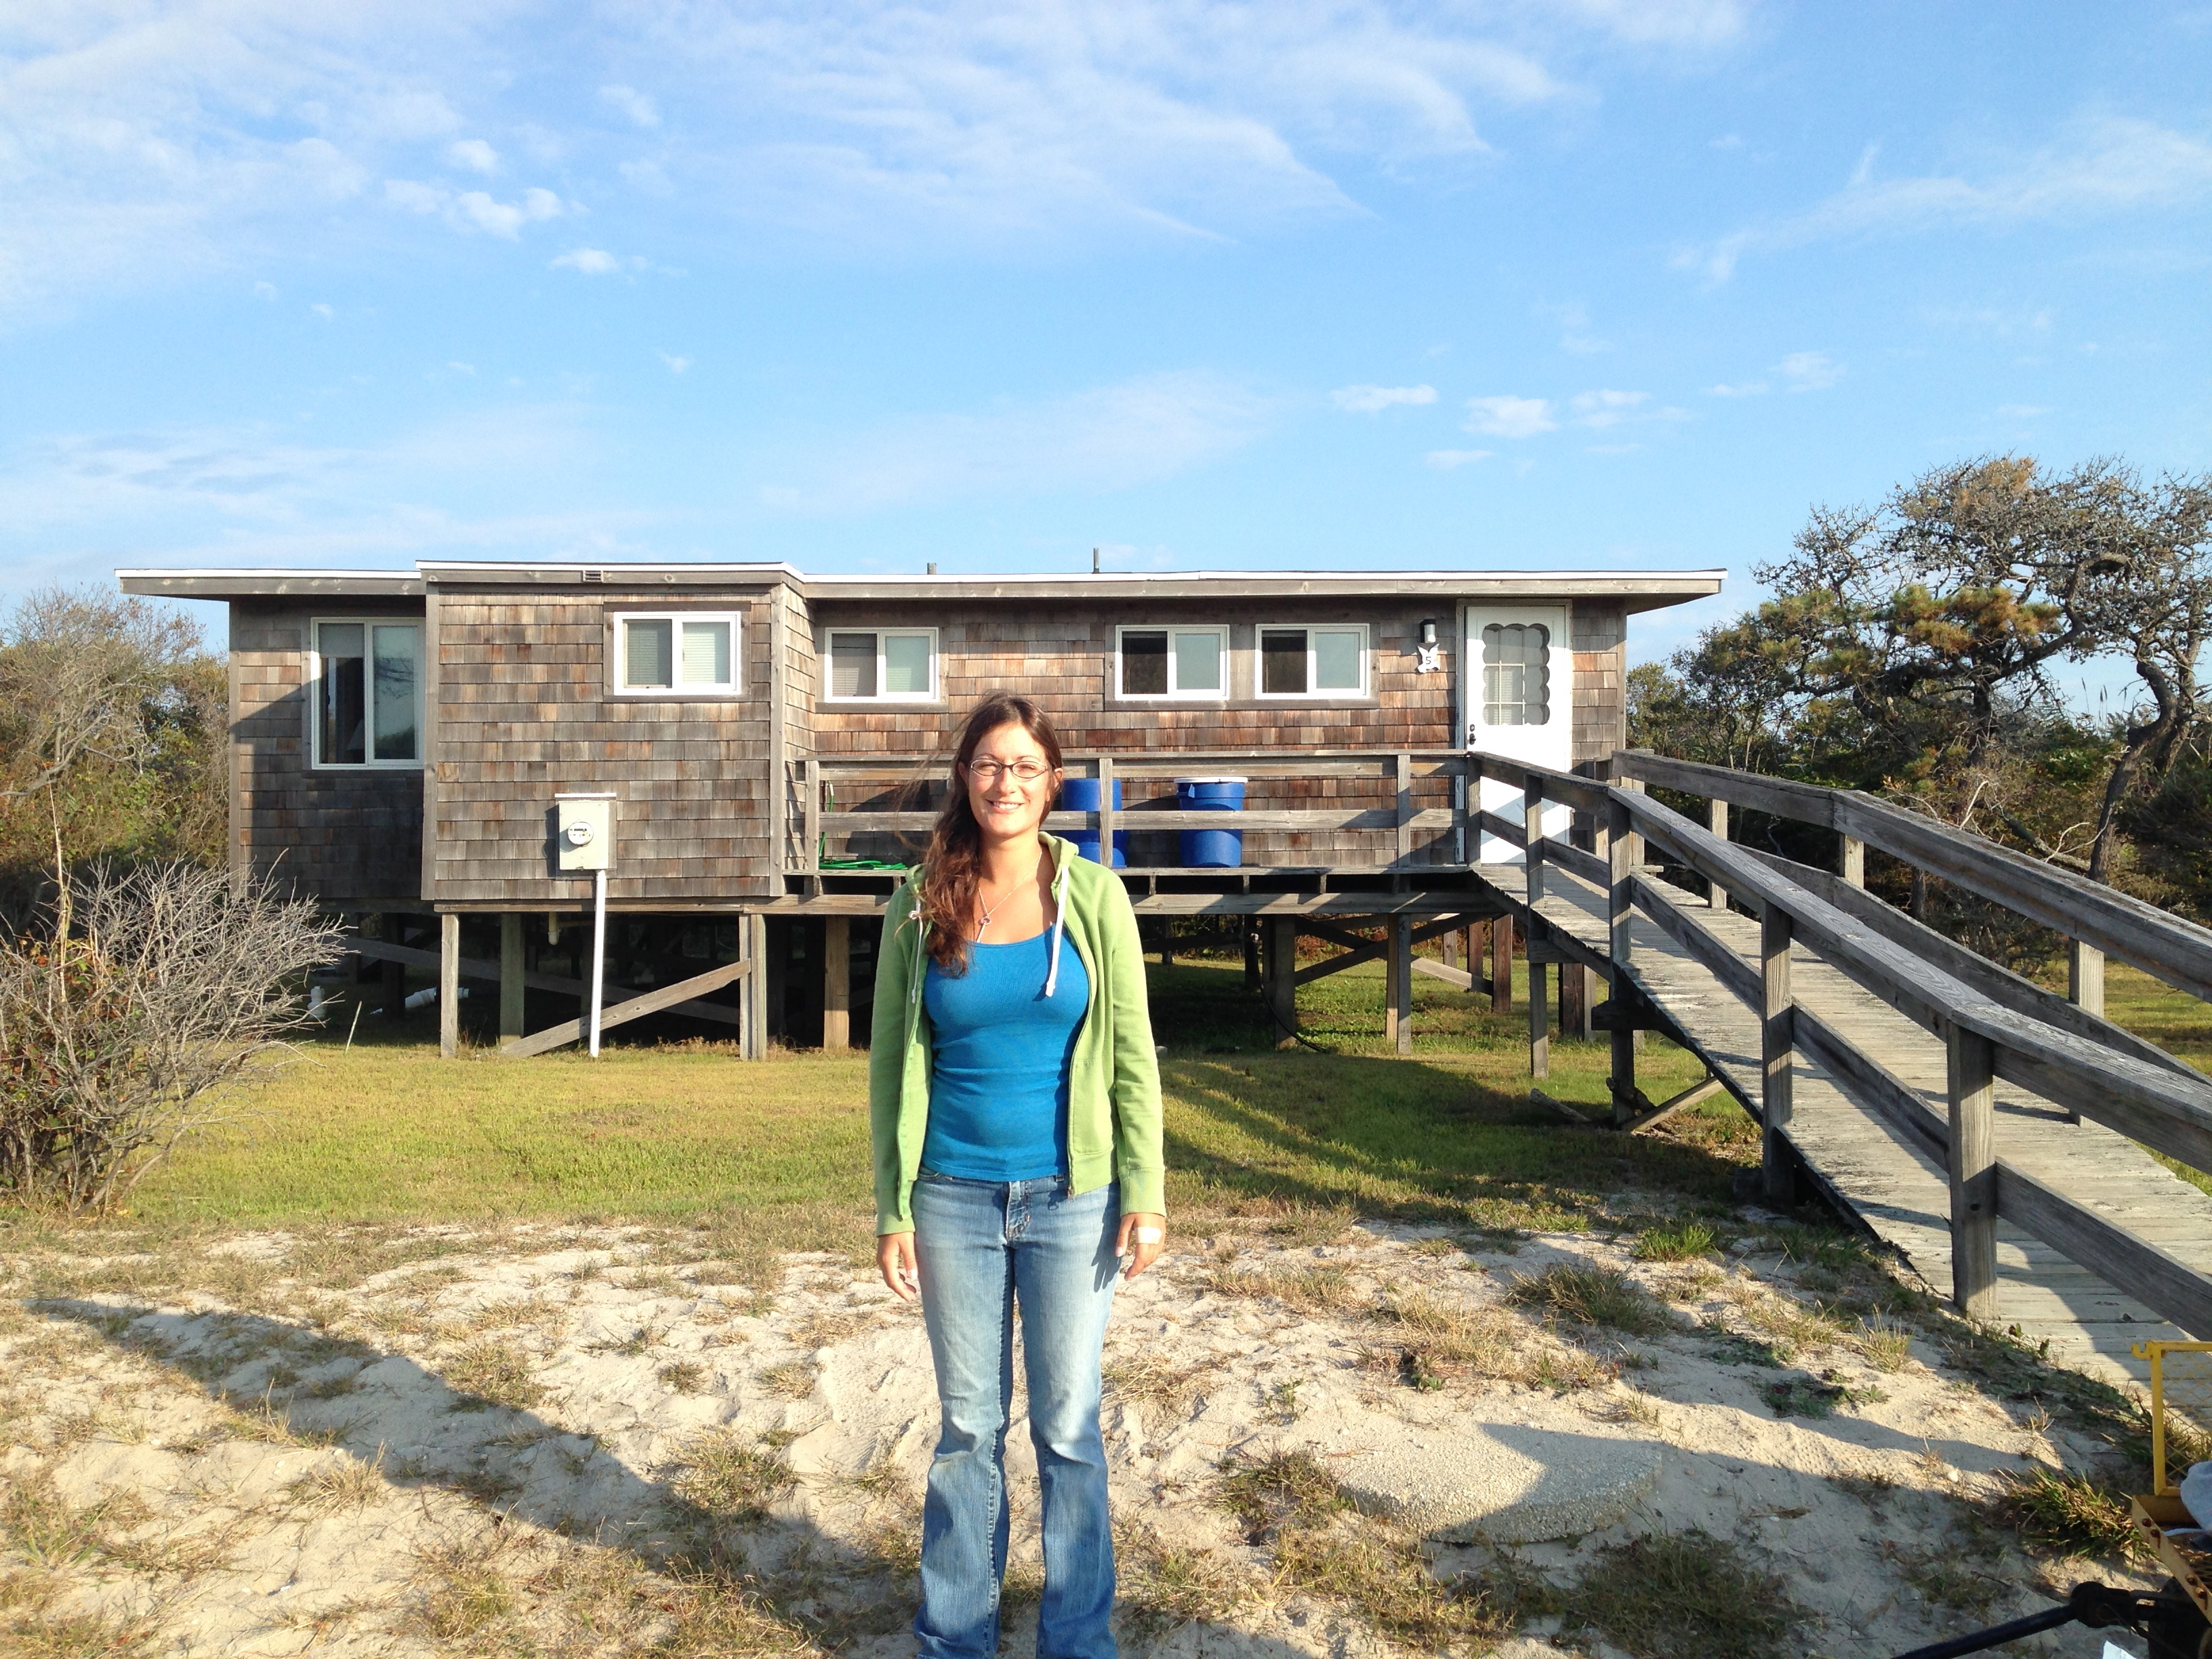 Dr. King introduced Monique LaFrance to habitat mapping eight years ago, when she was an undergraduate summer intern. Now a doctoral student, LaFrance is managing the fieldwork of a habitat-mapping project at Fire Island National Seashore and coordinating research teams at three other coastal National Parks.